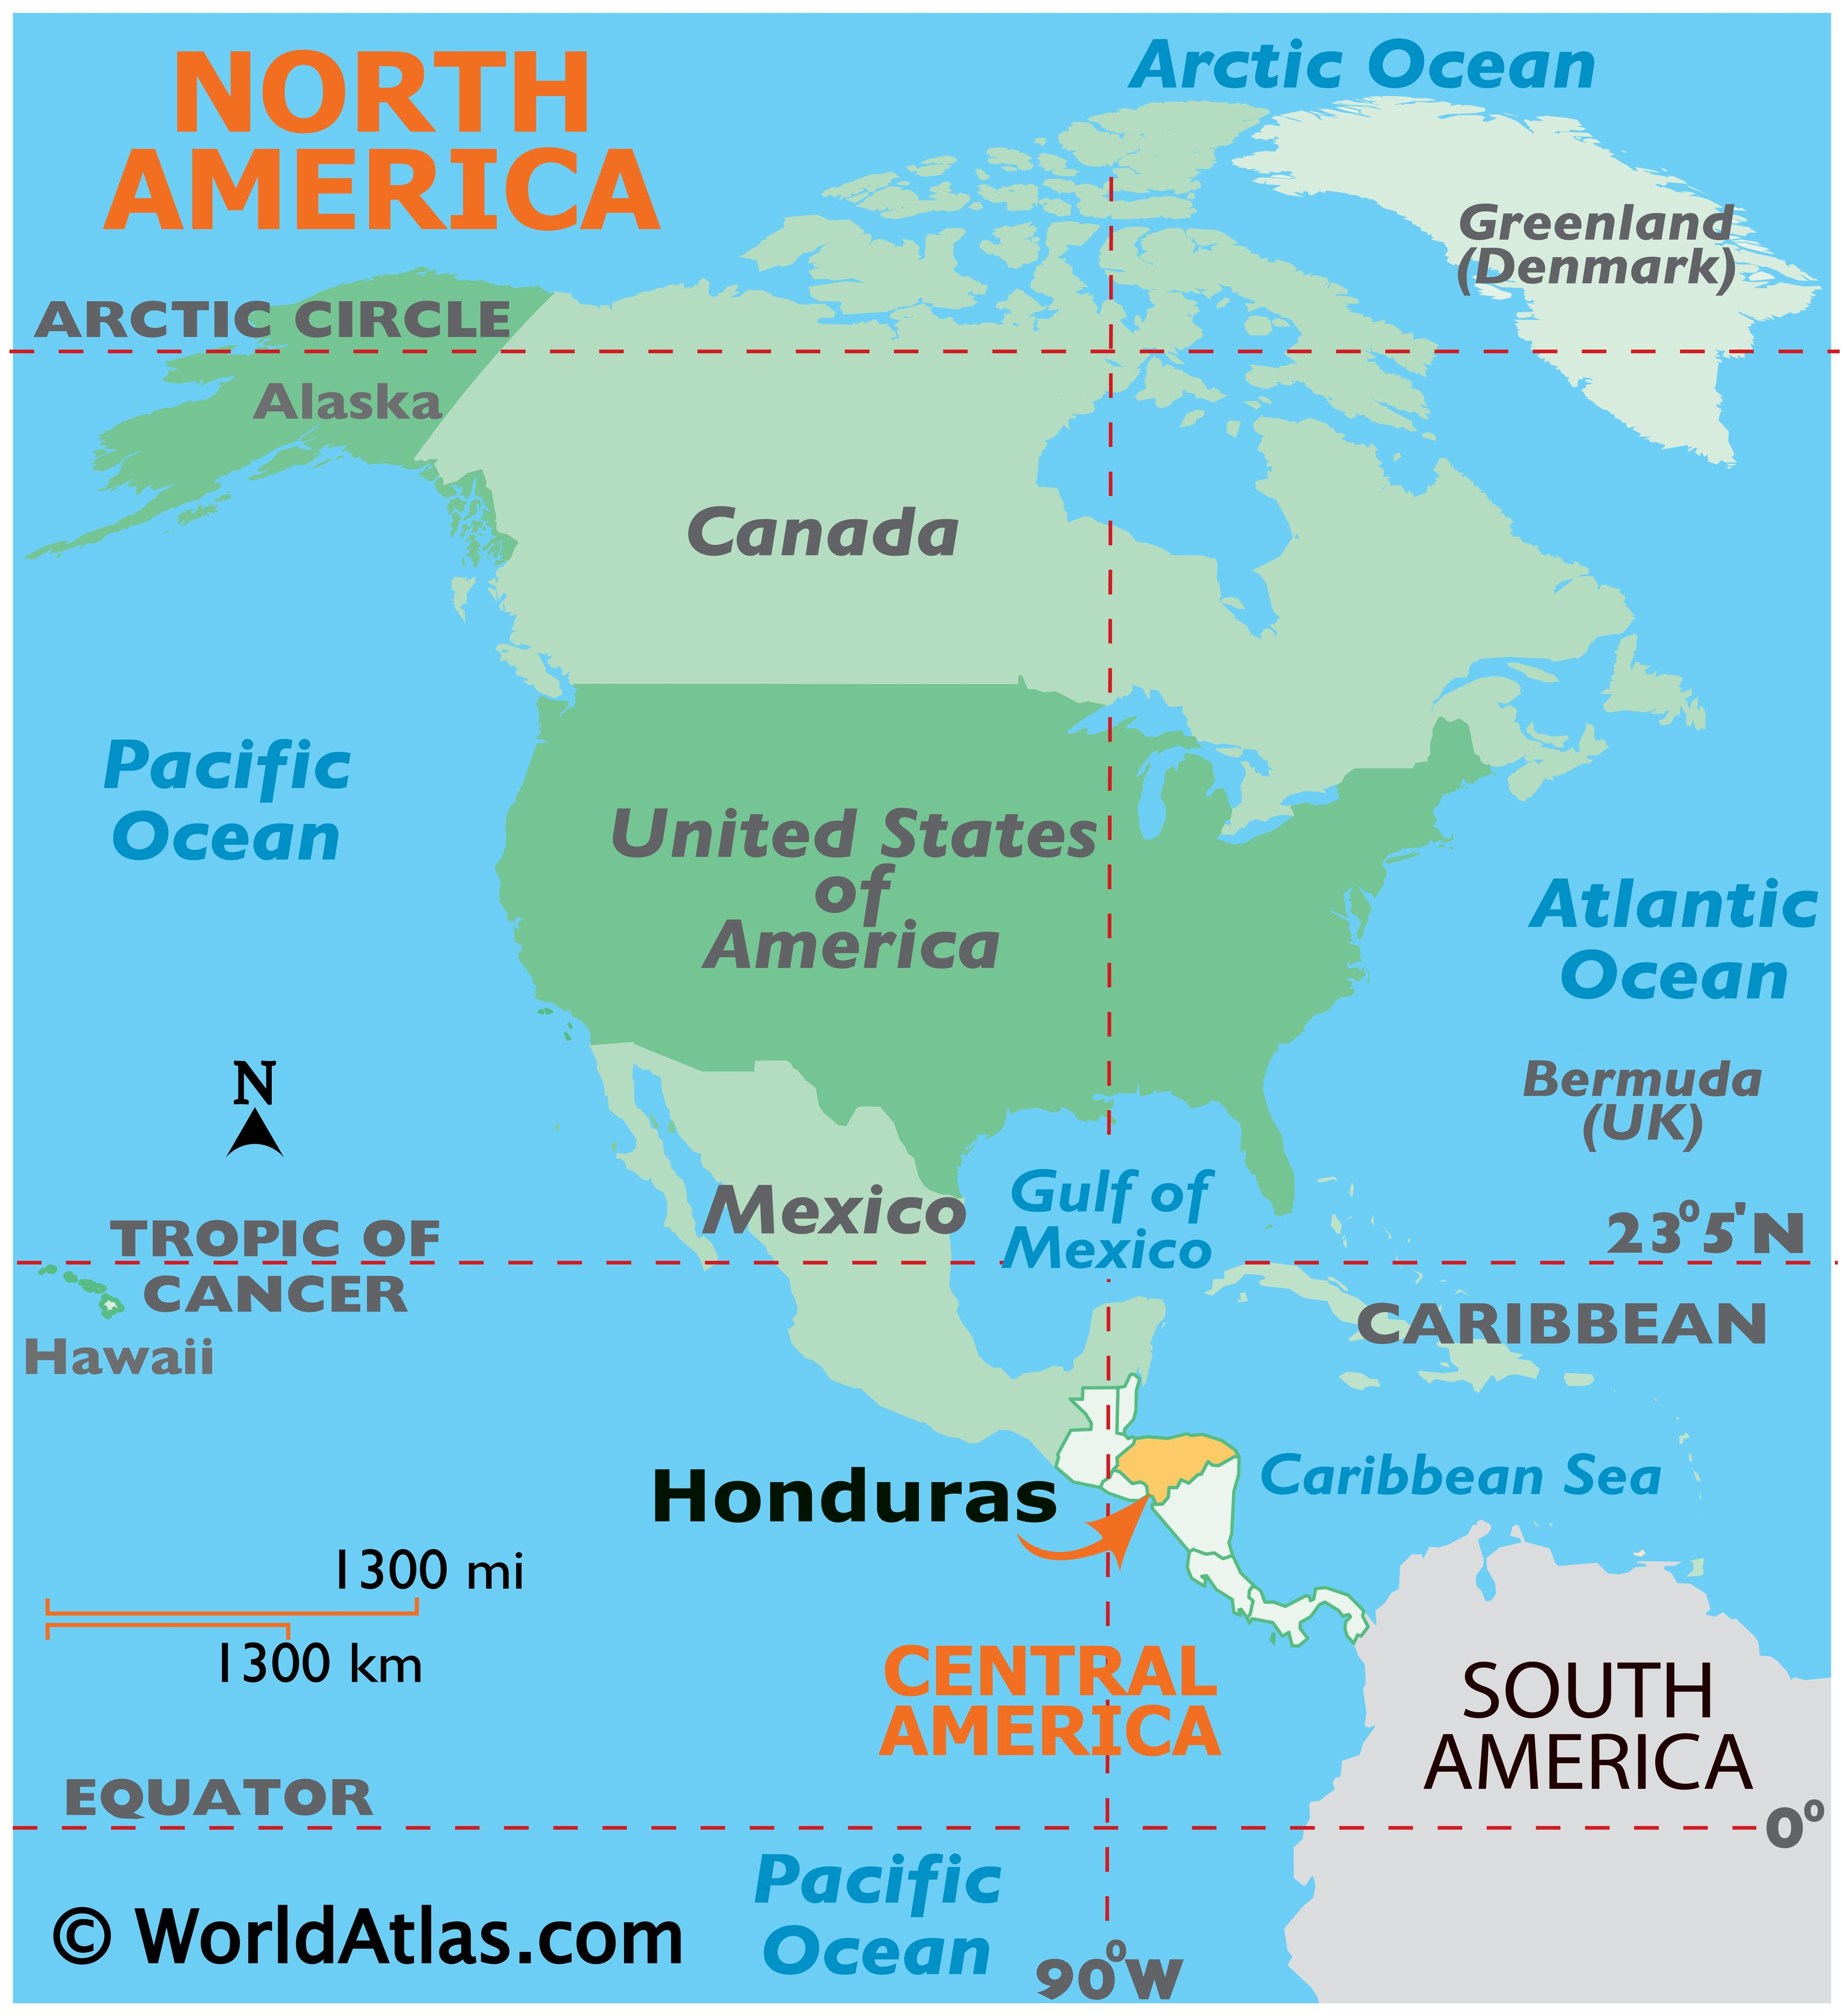 Where is Honduras?